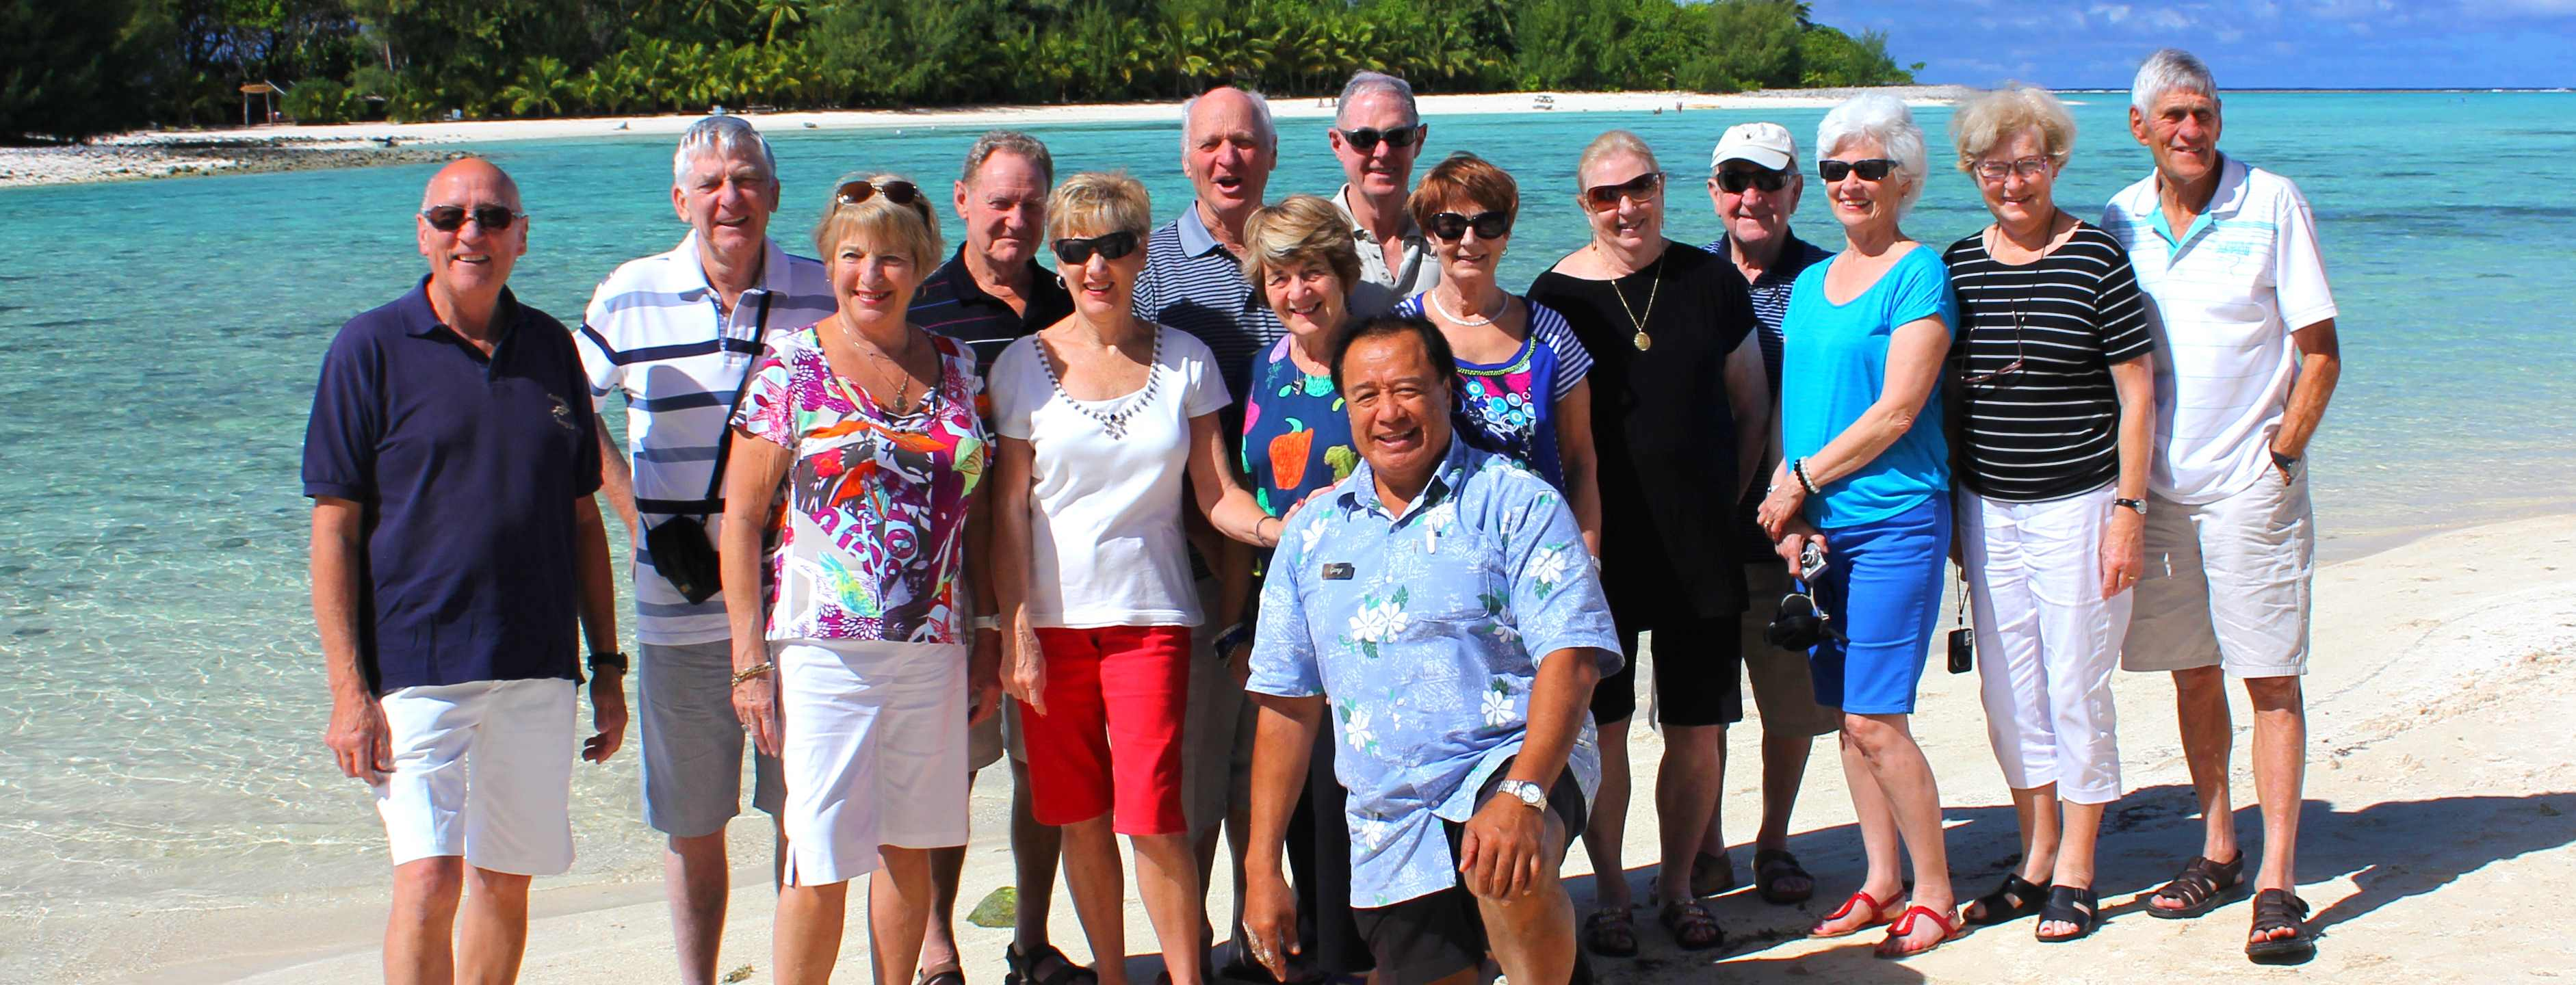 Island Discovery Tours - Groups